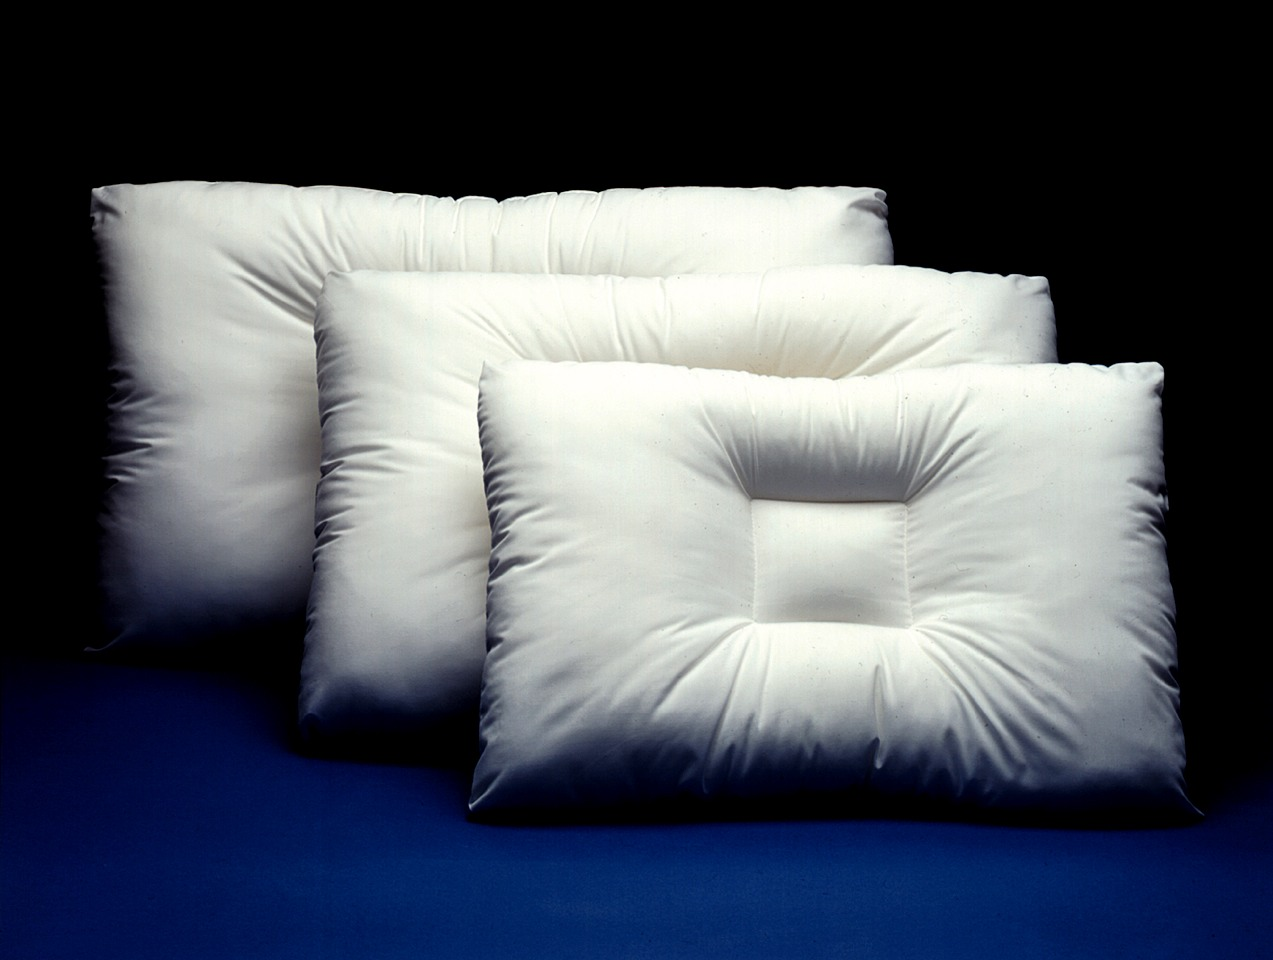 Wash your pillows. Even the decorative ones that have had heavy use.